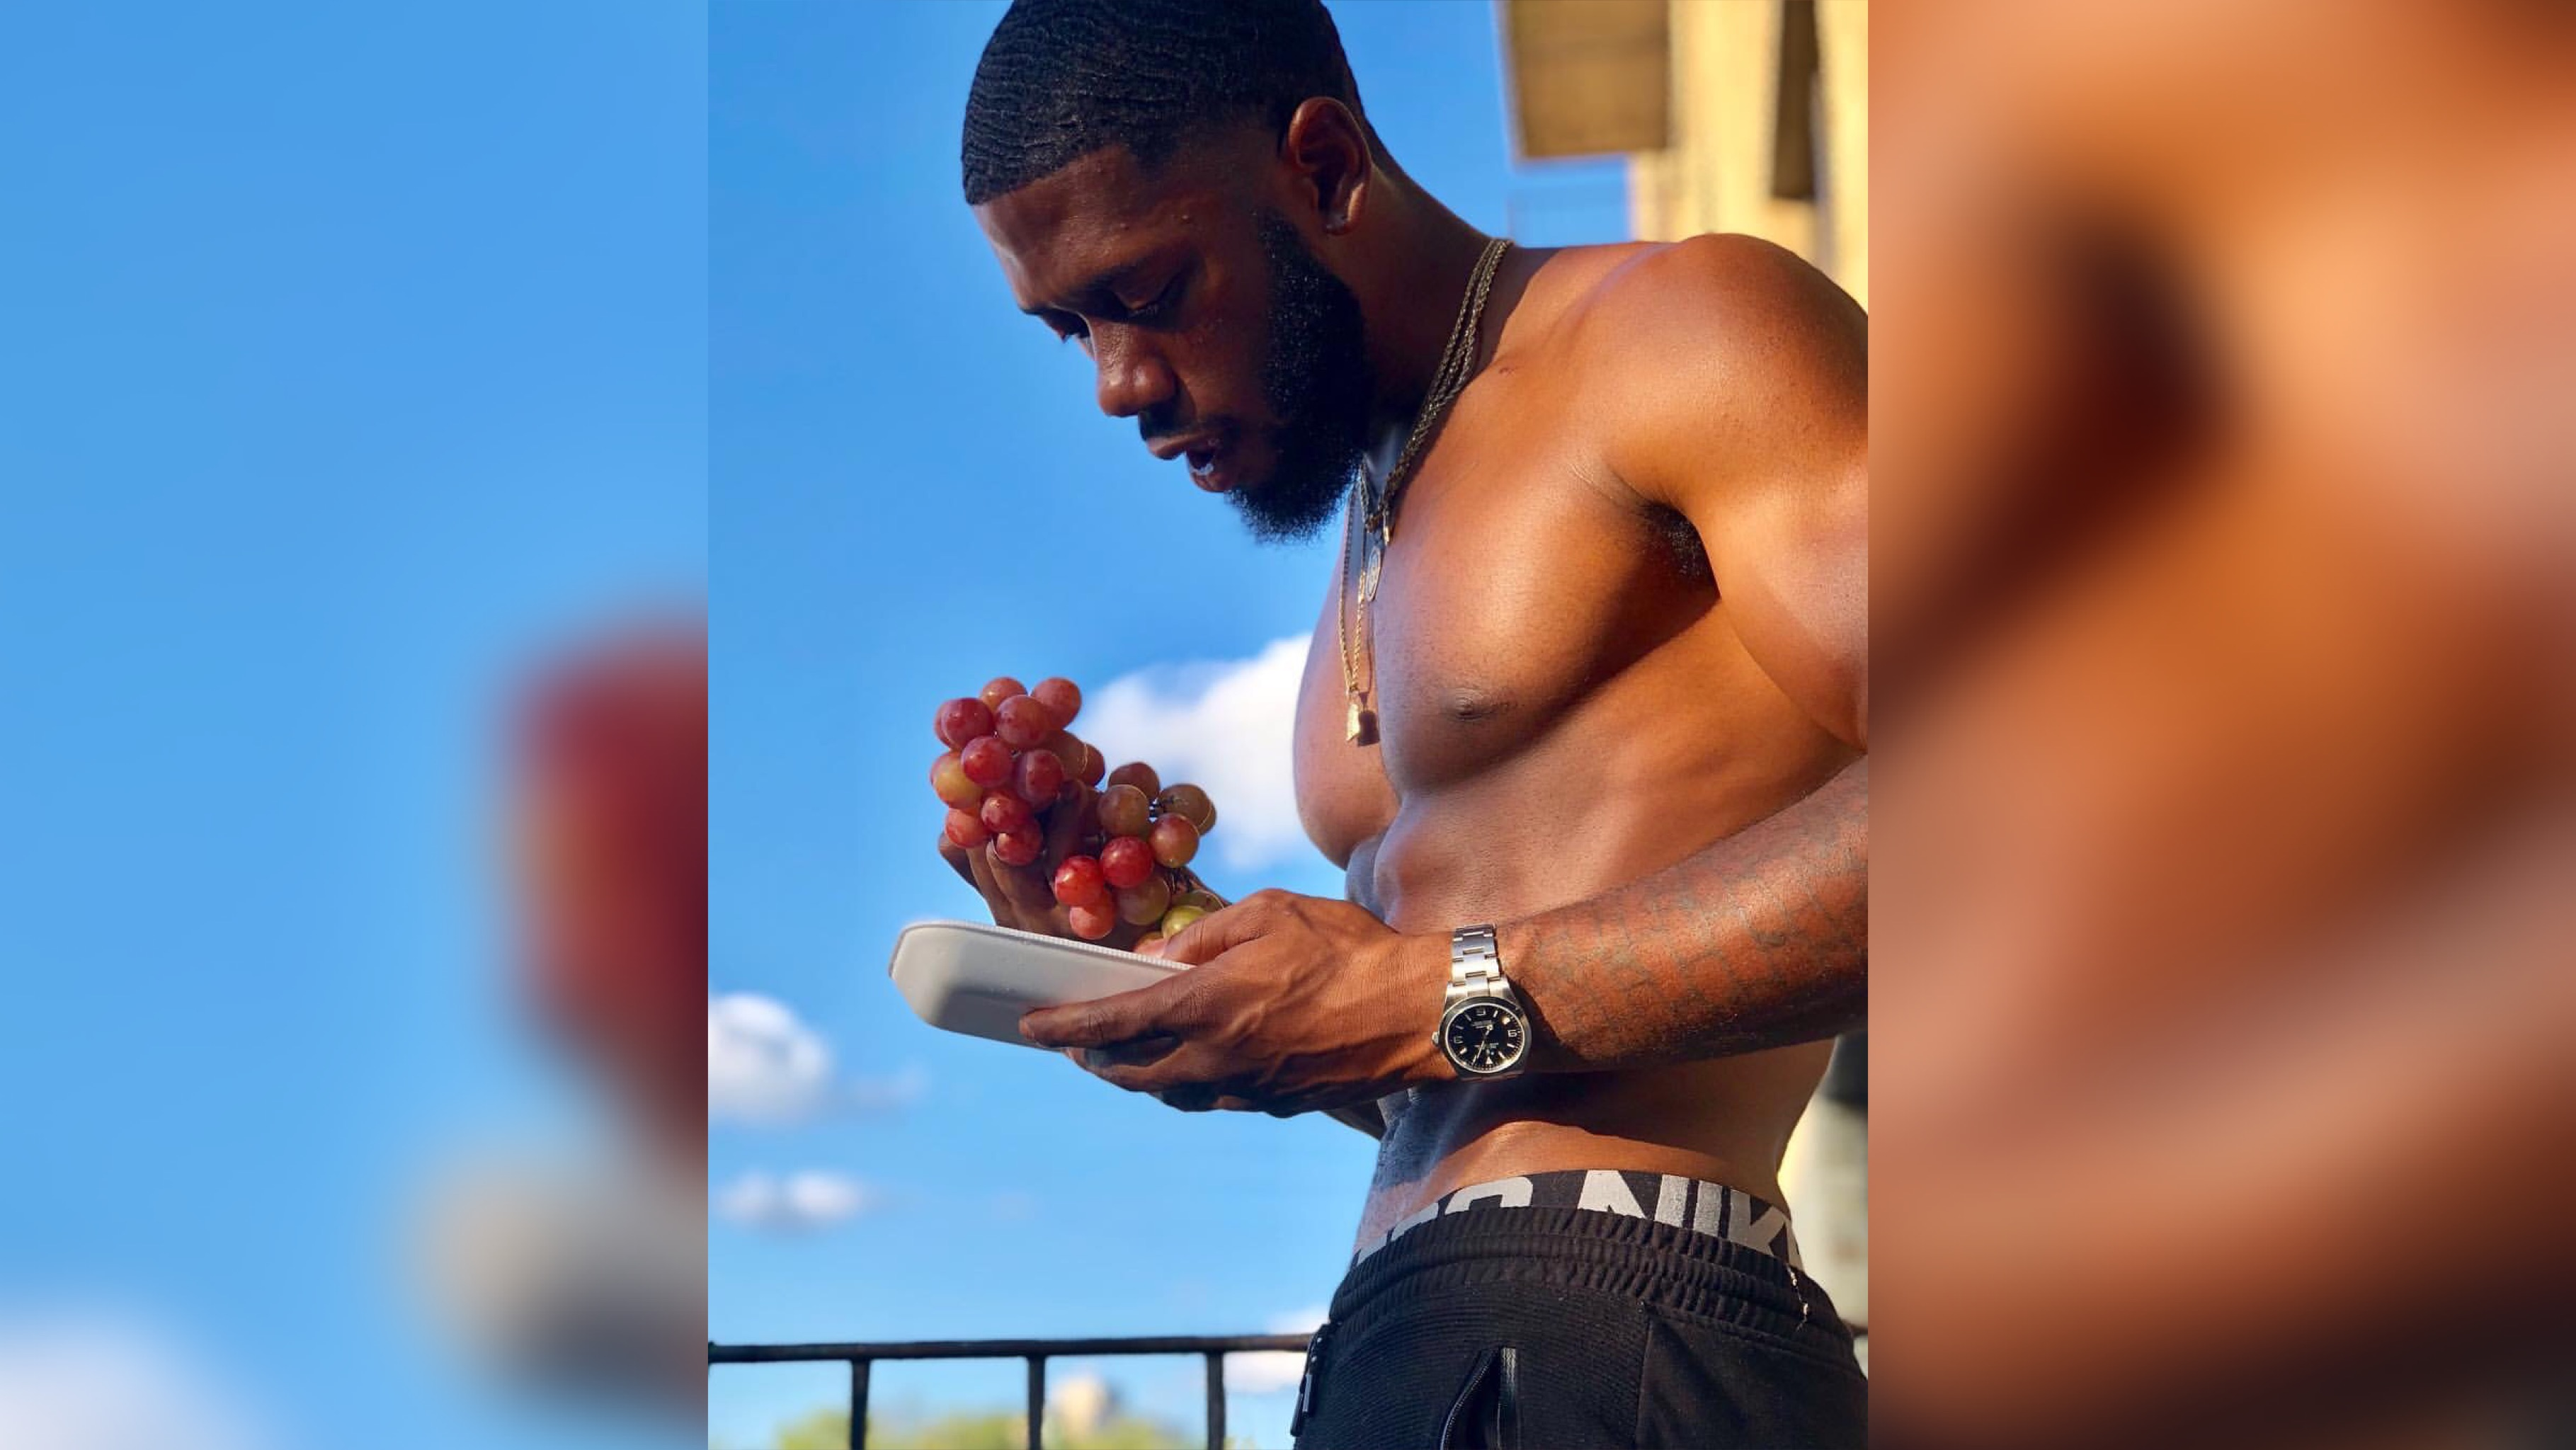 Eye Candy: Prison Style Fitness Camp Trainer Dontrell Britton